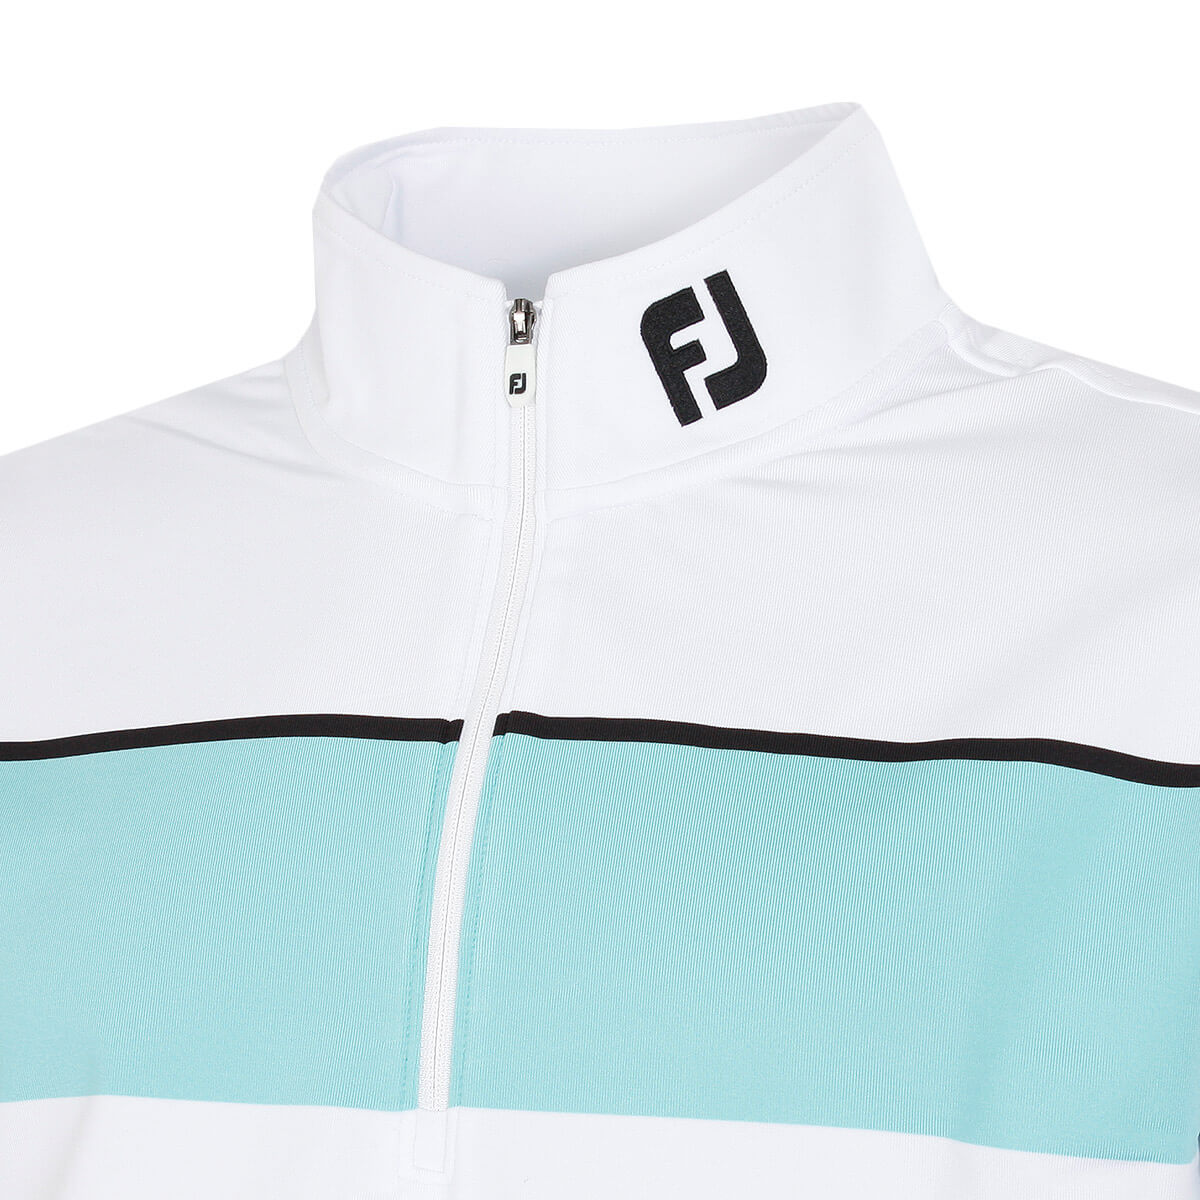 Footjoy-Mens-Jersey-Chest-Stripe-1-2-Zip-Wicking-Golf-Sweater-51-OFF-RRP thumbnail 7